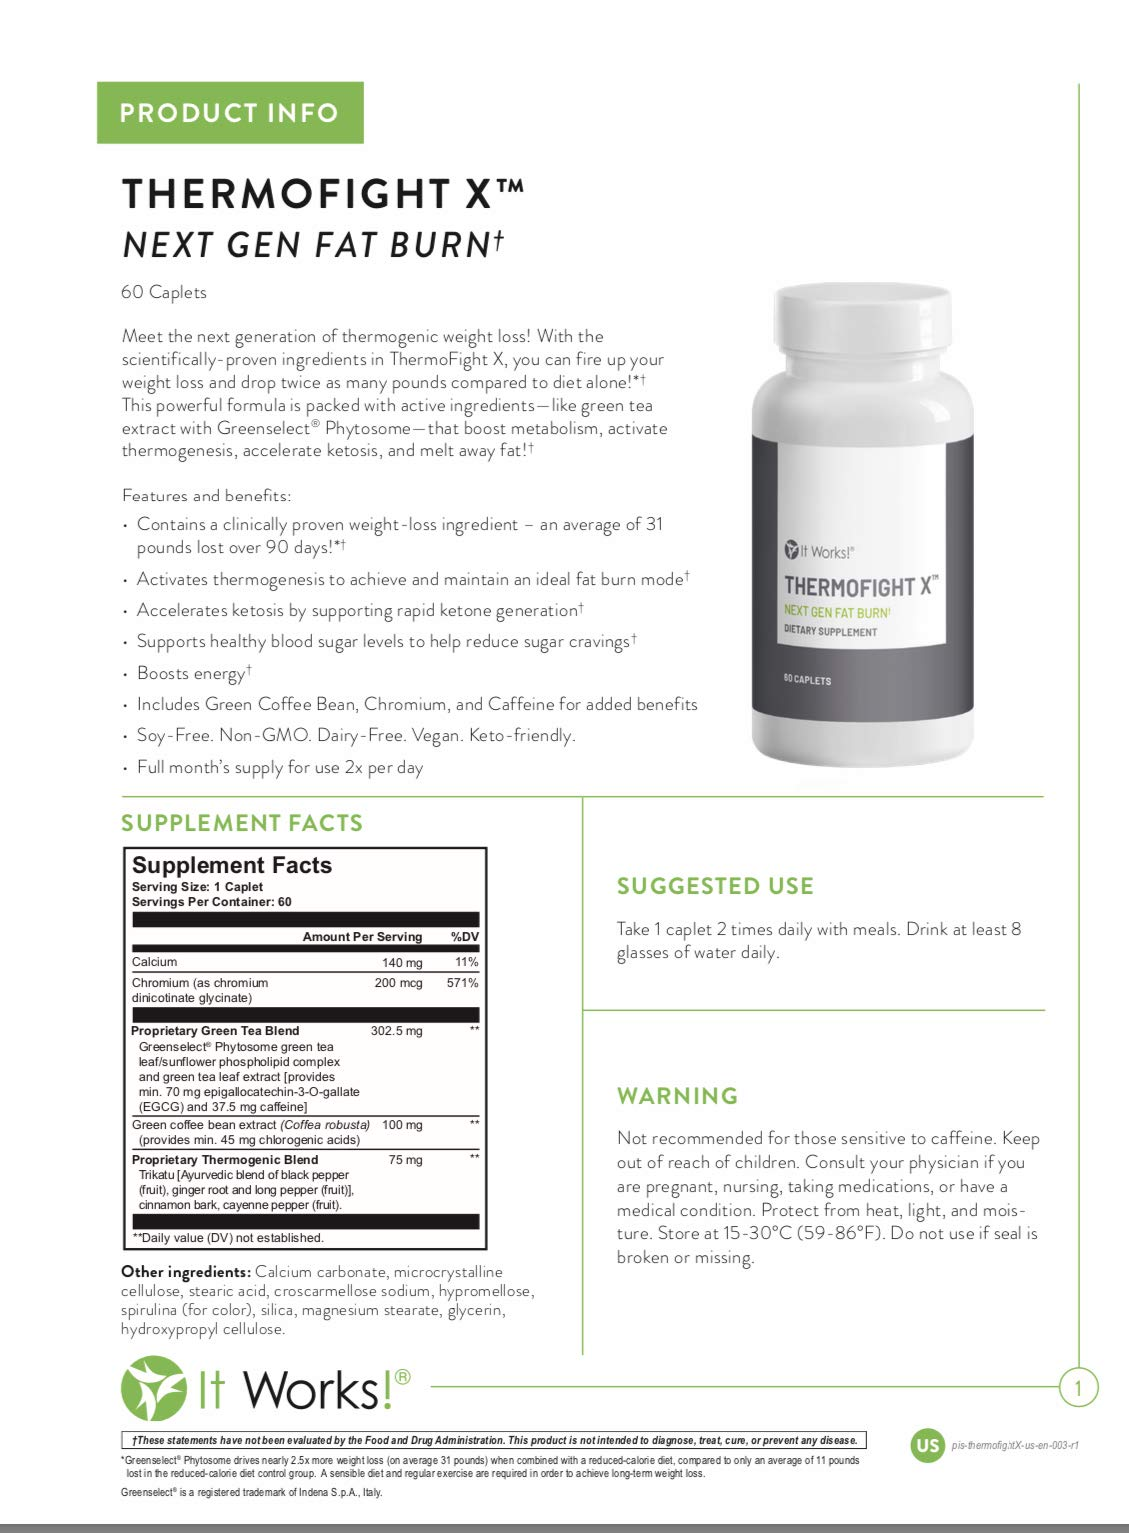 Thermofight X Next Gen Fat Burner - 60 Caplets by It Works (Image #3)